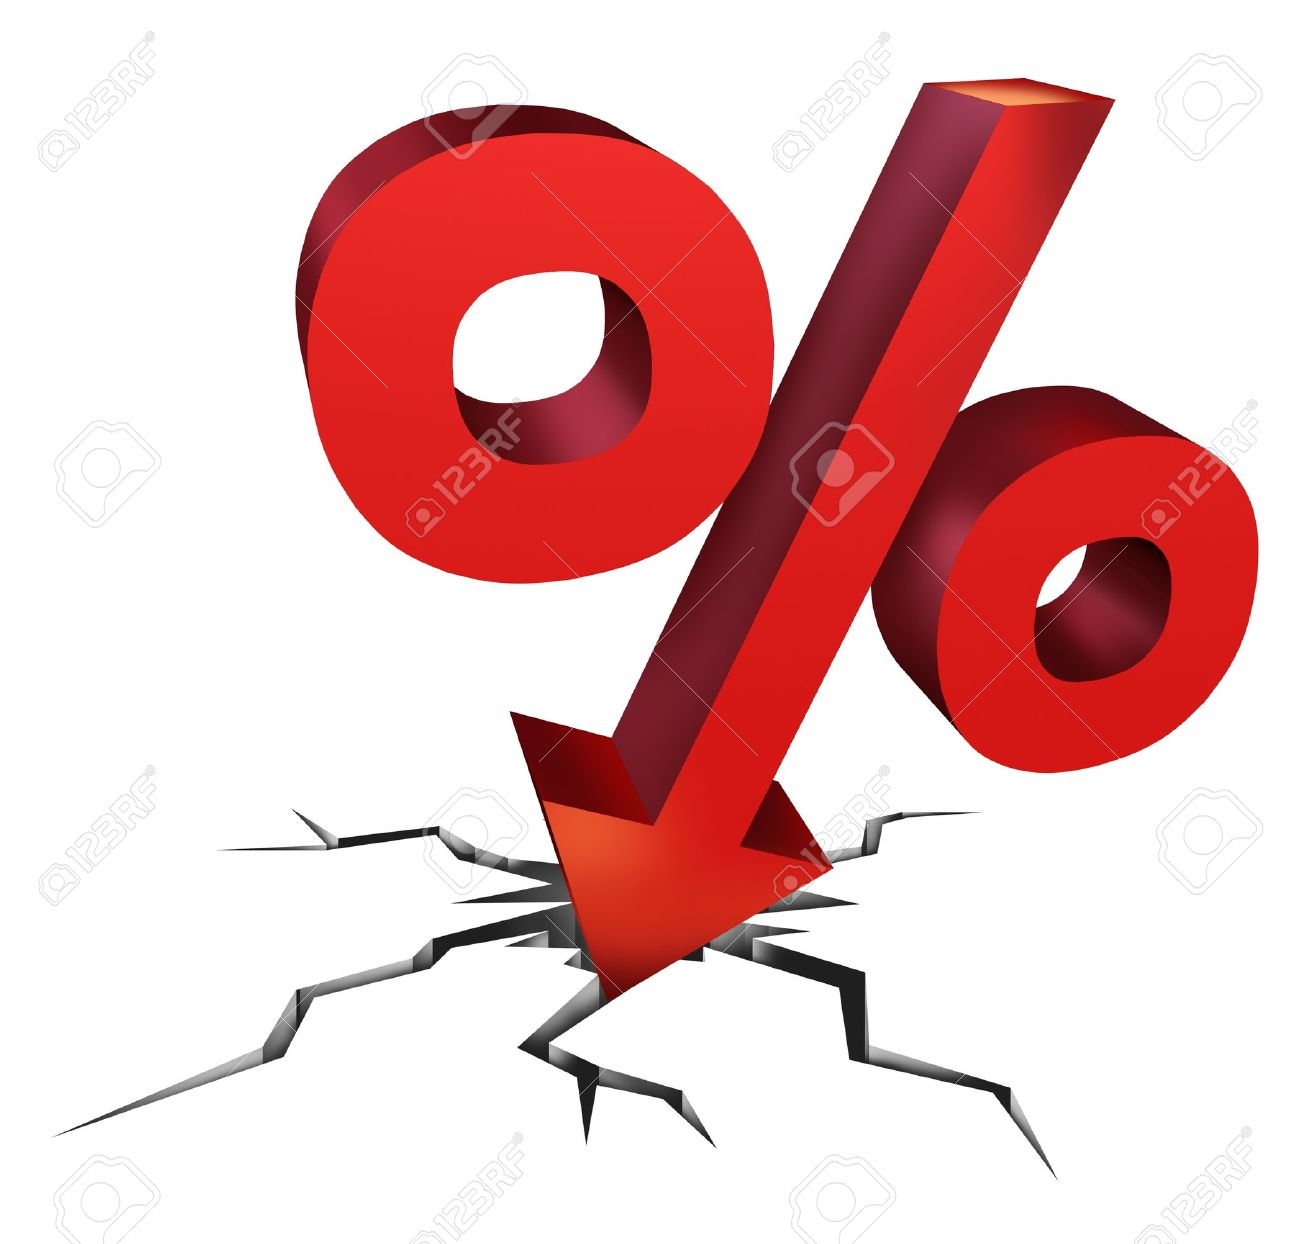 Falling Interest Rates As A Red Percentage Sign As A Symbol Of An